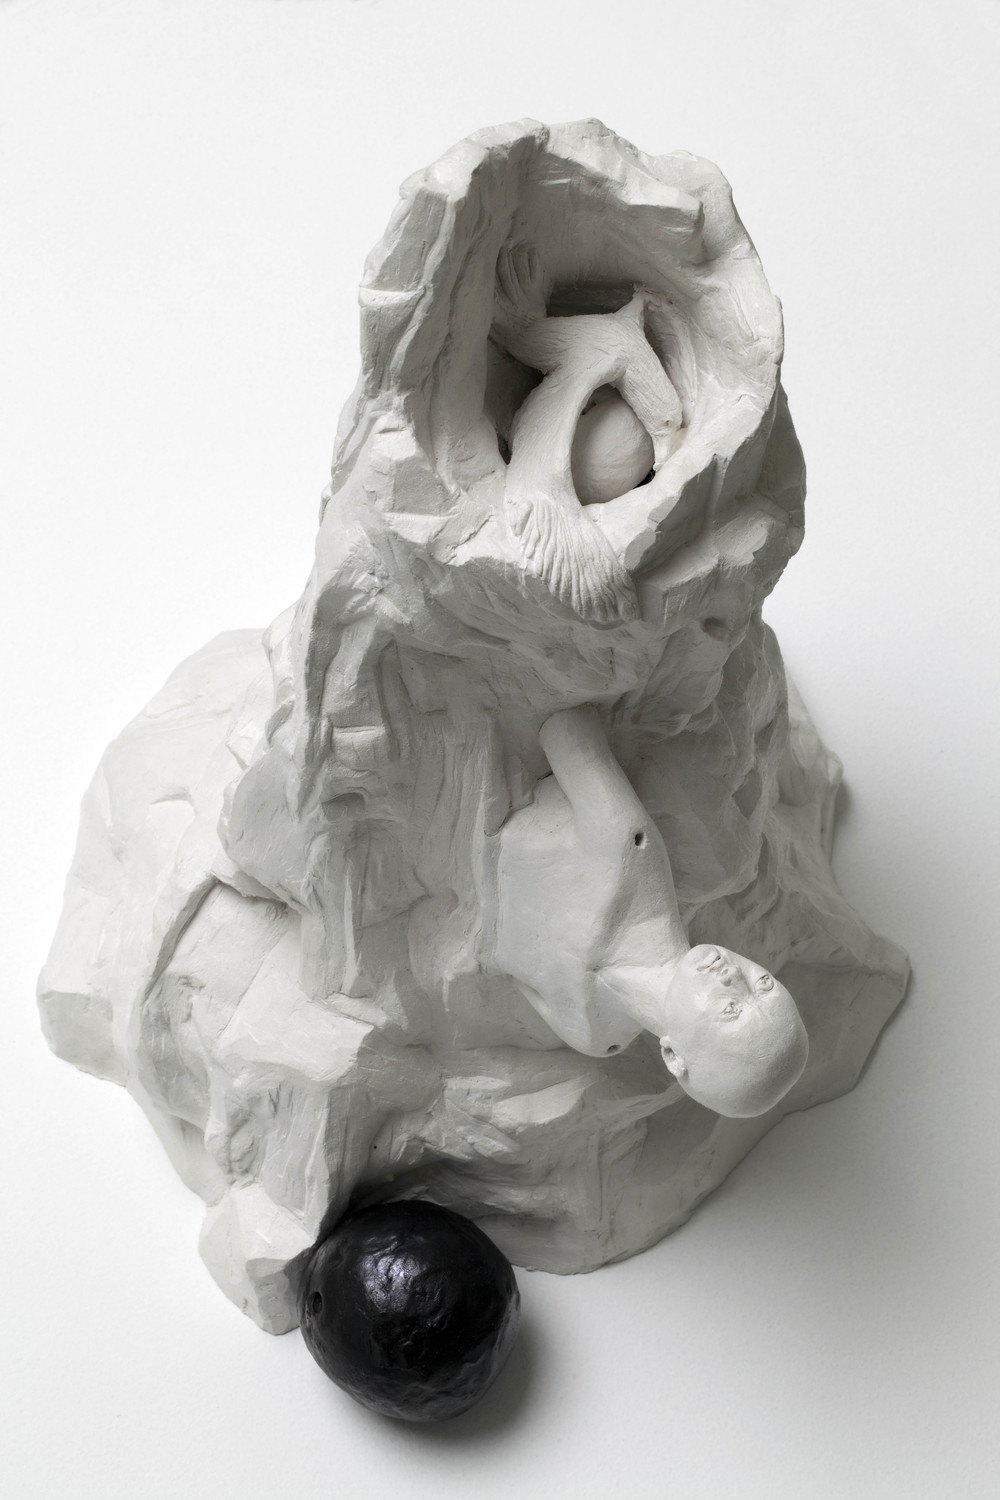 Top Down Trek, bronze, polymer modelling clay,  38 x 27 x 26 cm, 2011. Photography by Ashley Barber, Sarah Cottier Gallery.